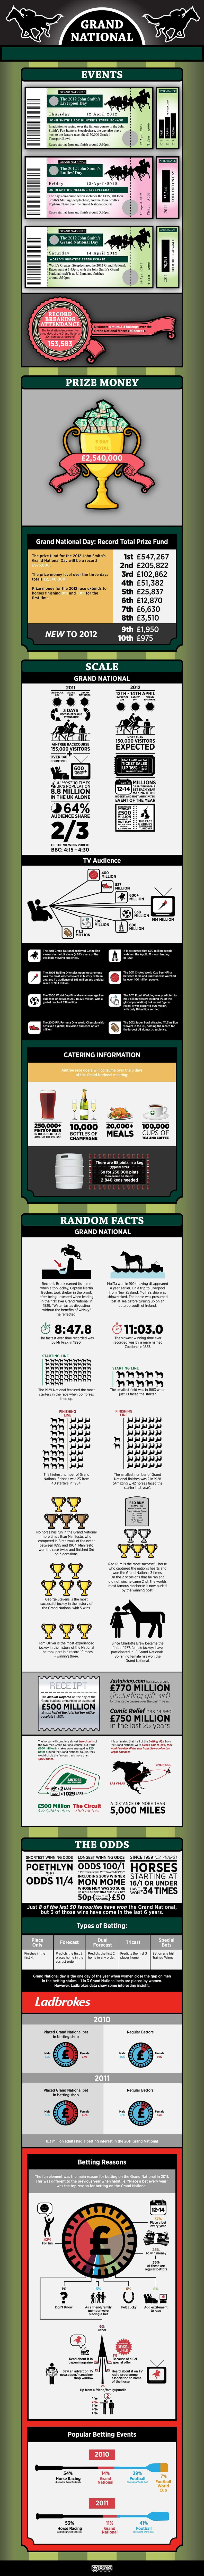 Grand National 2012 numbers